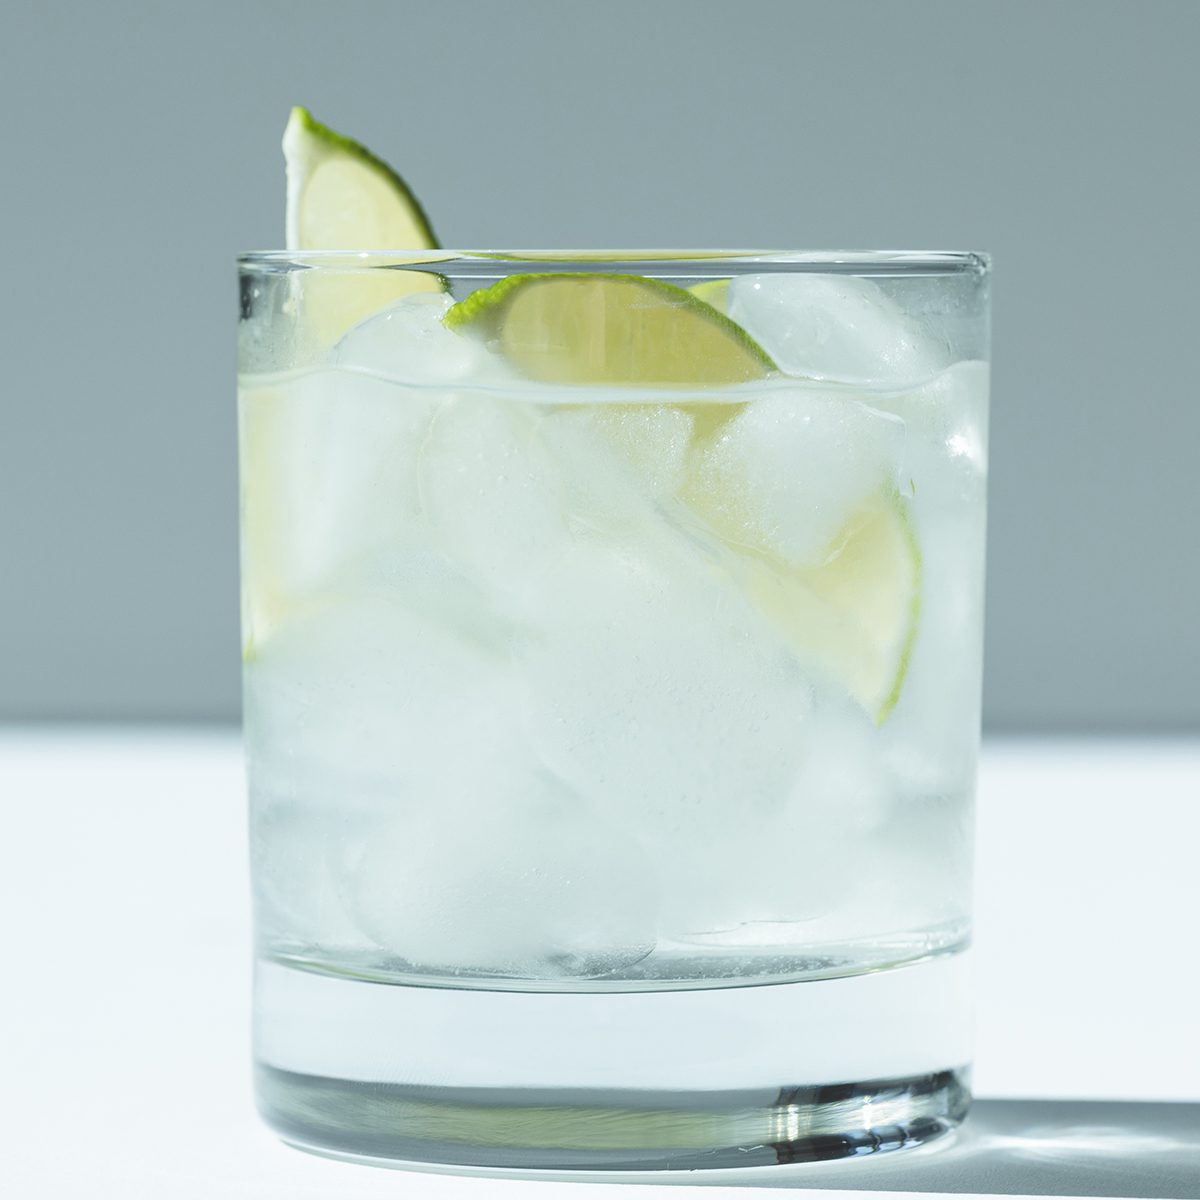 close-up view of Gin Tonic cocktail with lime and ice cubes in glass; Shutterstock ID 731431963; Job (TFH, TOH, RD, BNB, CWM, CM): TOH